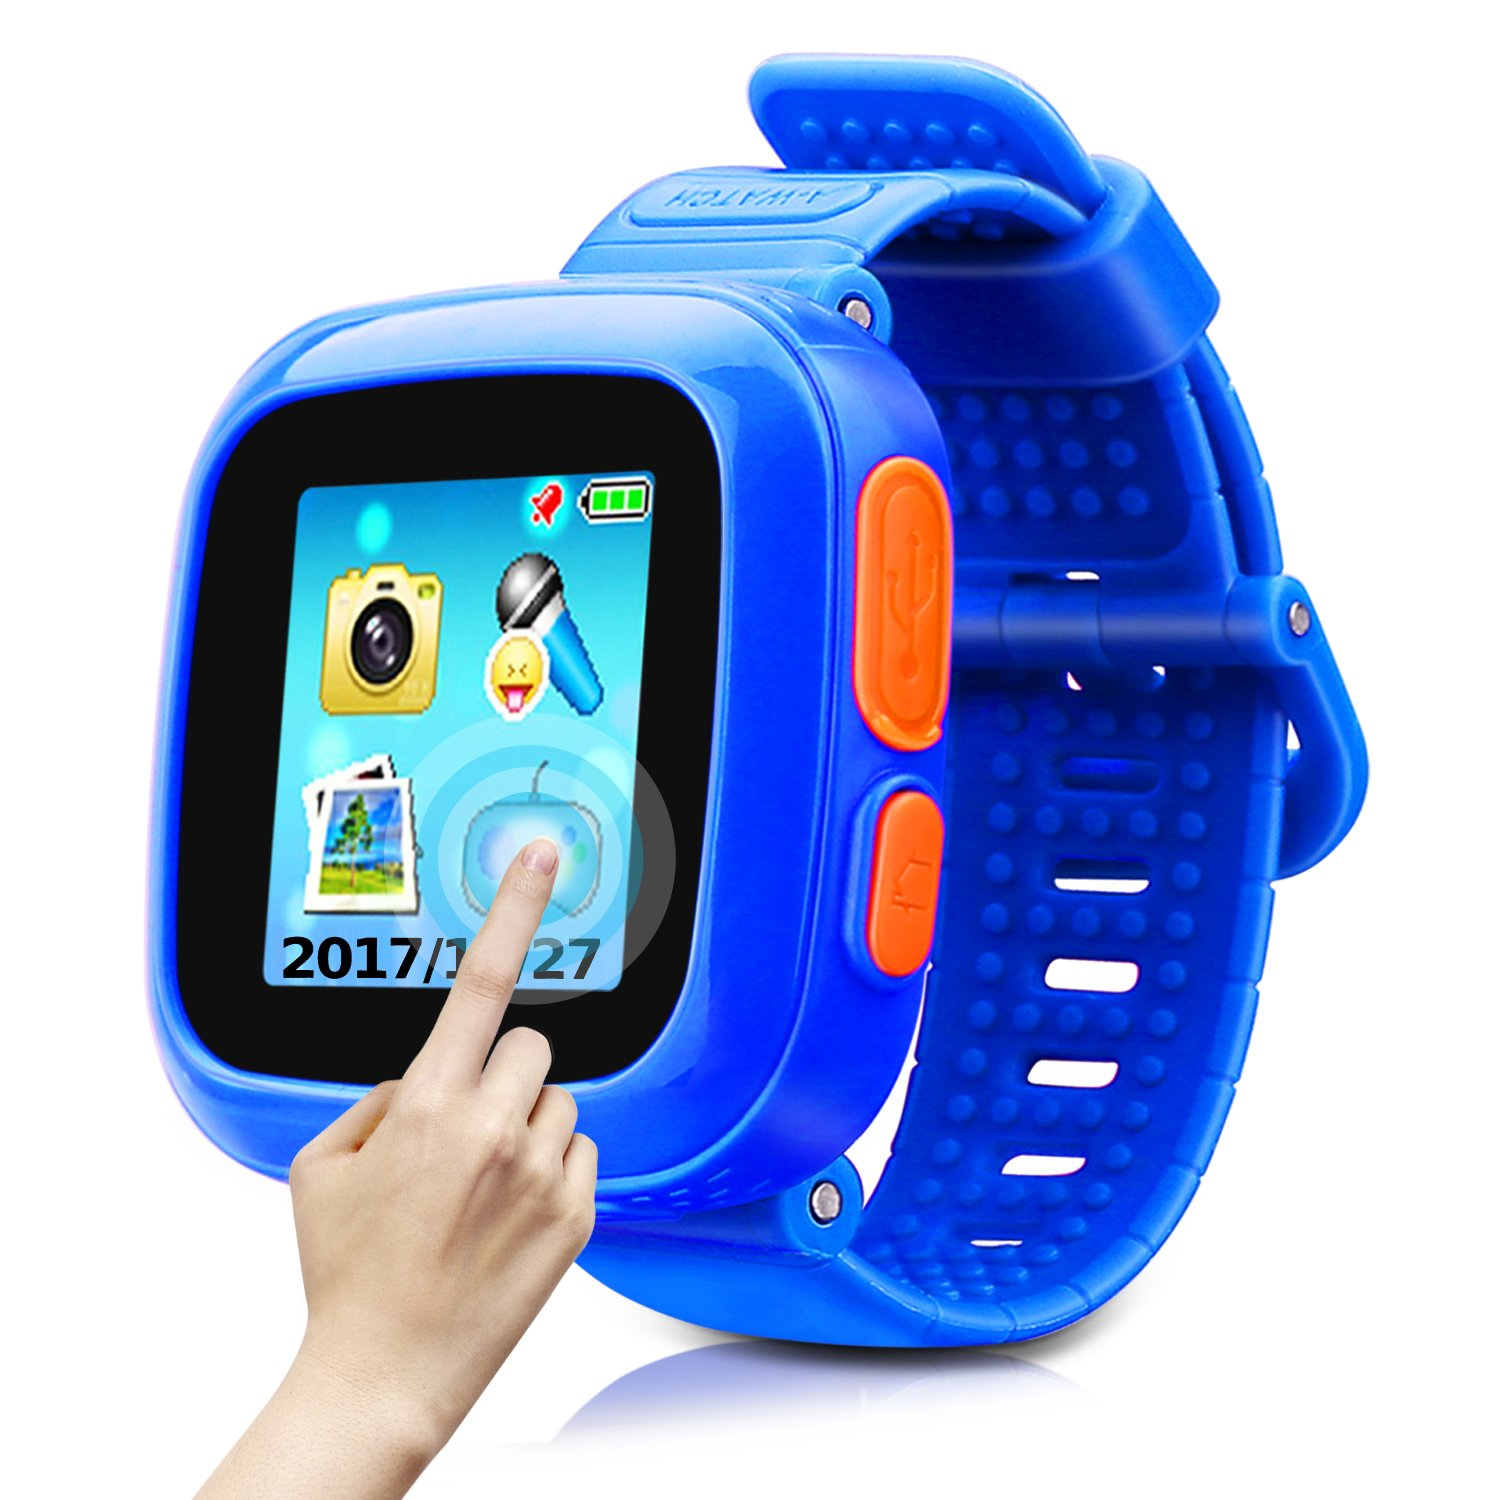 Game Smart Watch Of Kids, Girls Watch With Game,Kids Smartwatch With Game Wrist Watch Education Toys Boys Girls Gifts